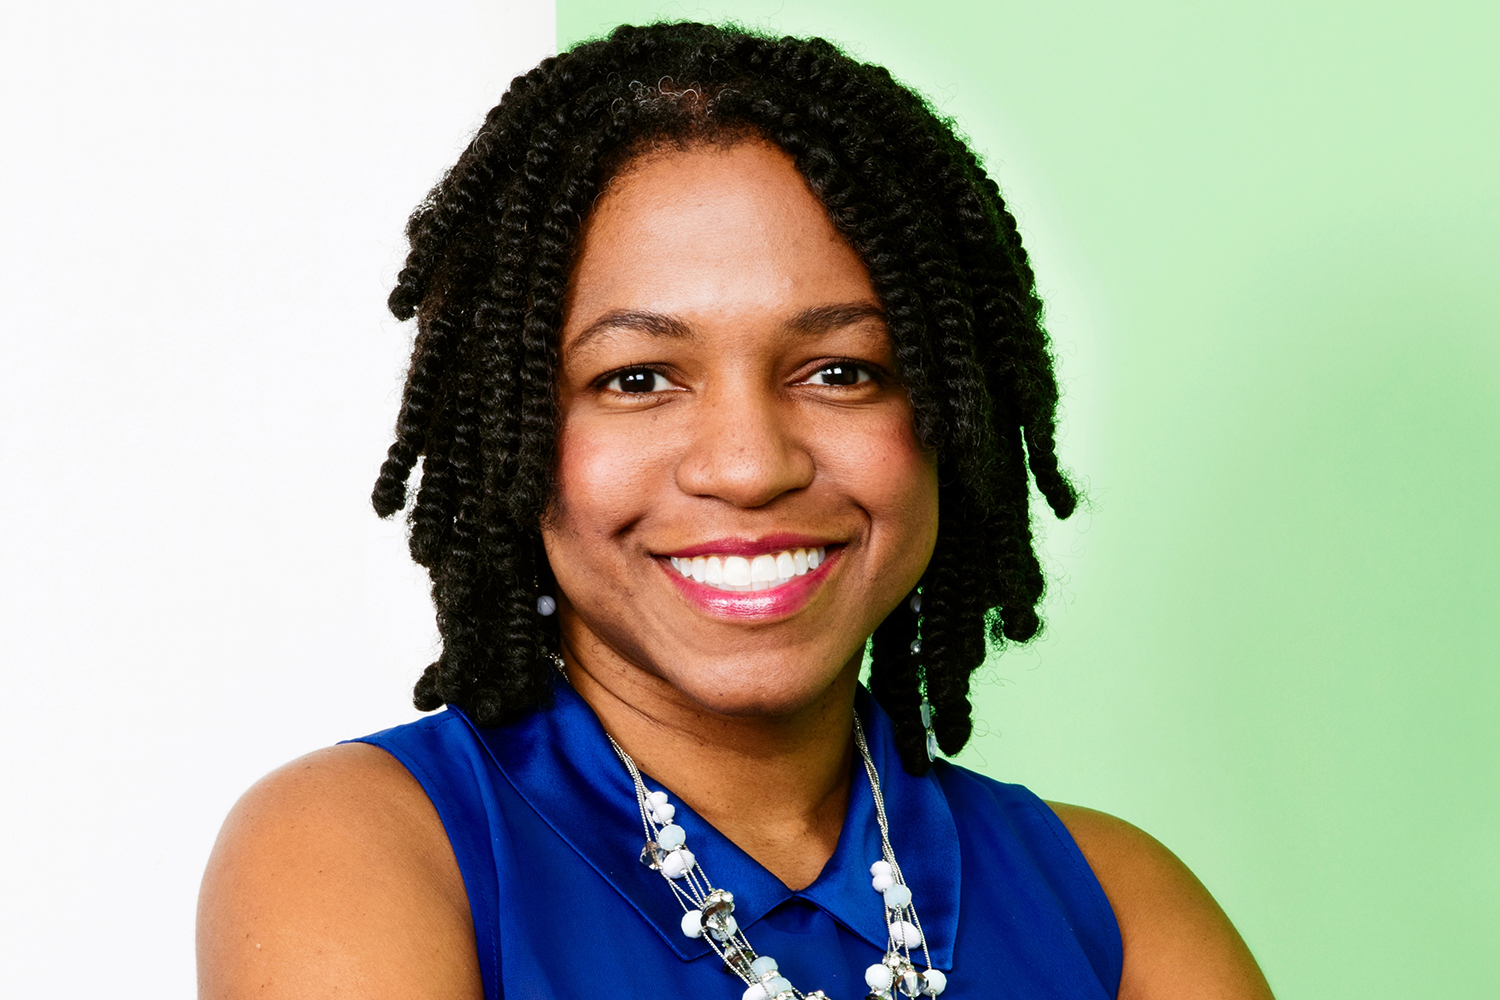 Stacy Brown Philpot Of Taskrabbit On Being A Black Woman In Silicon